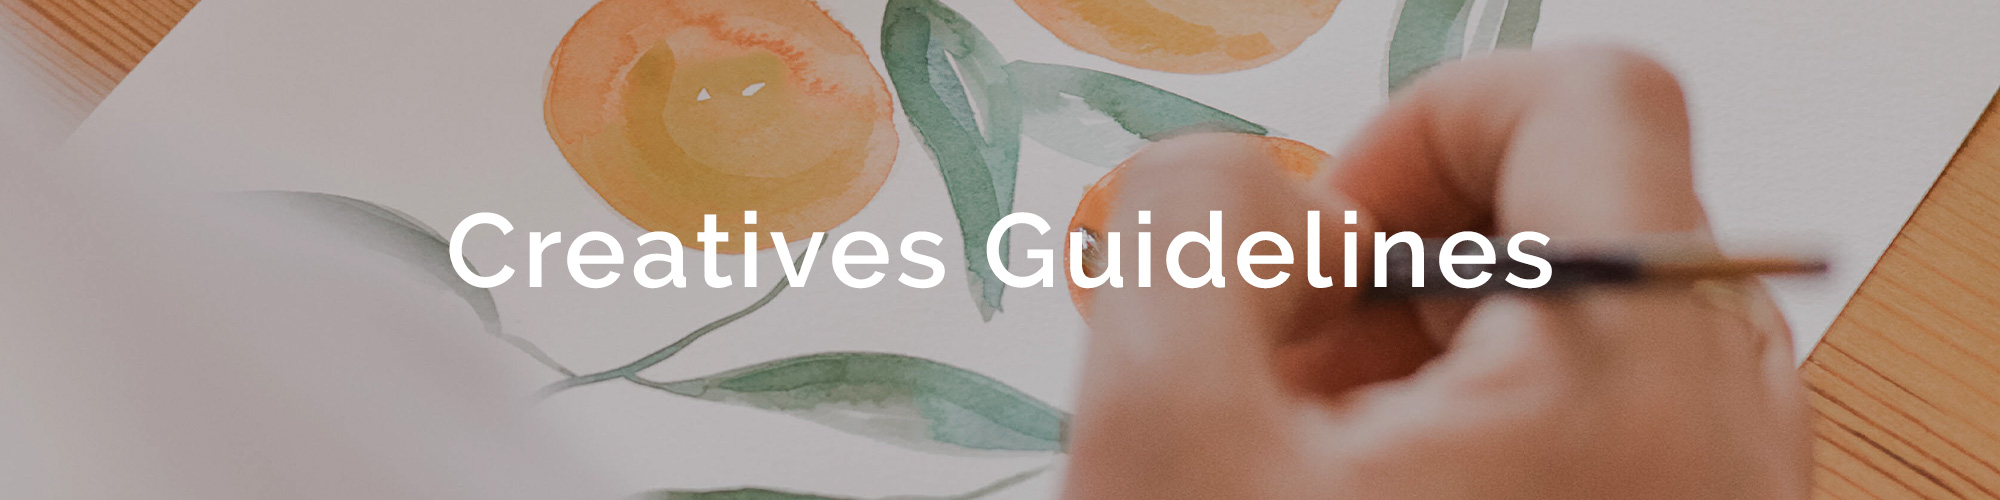 Creatives Guidelines